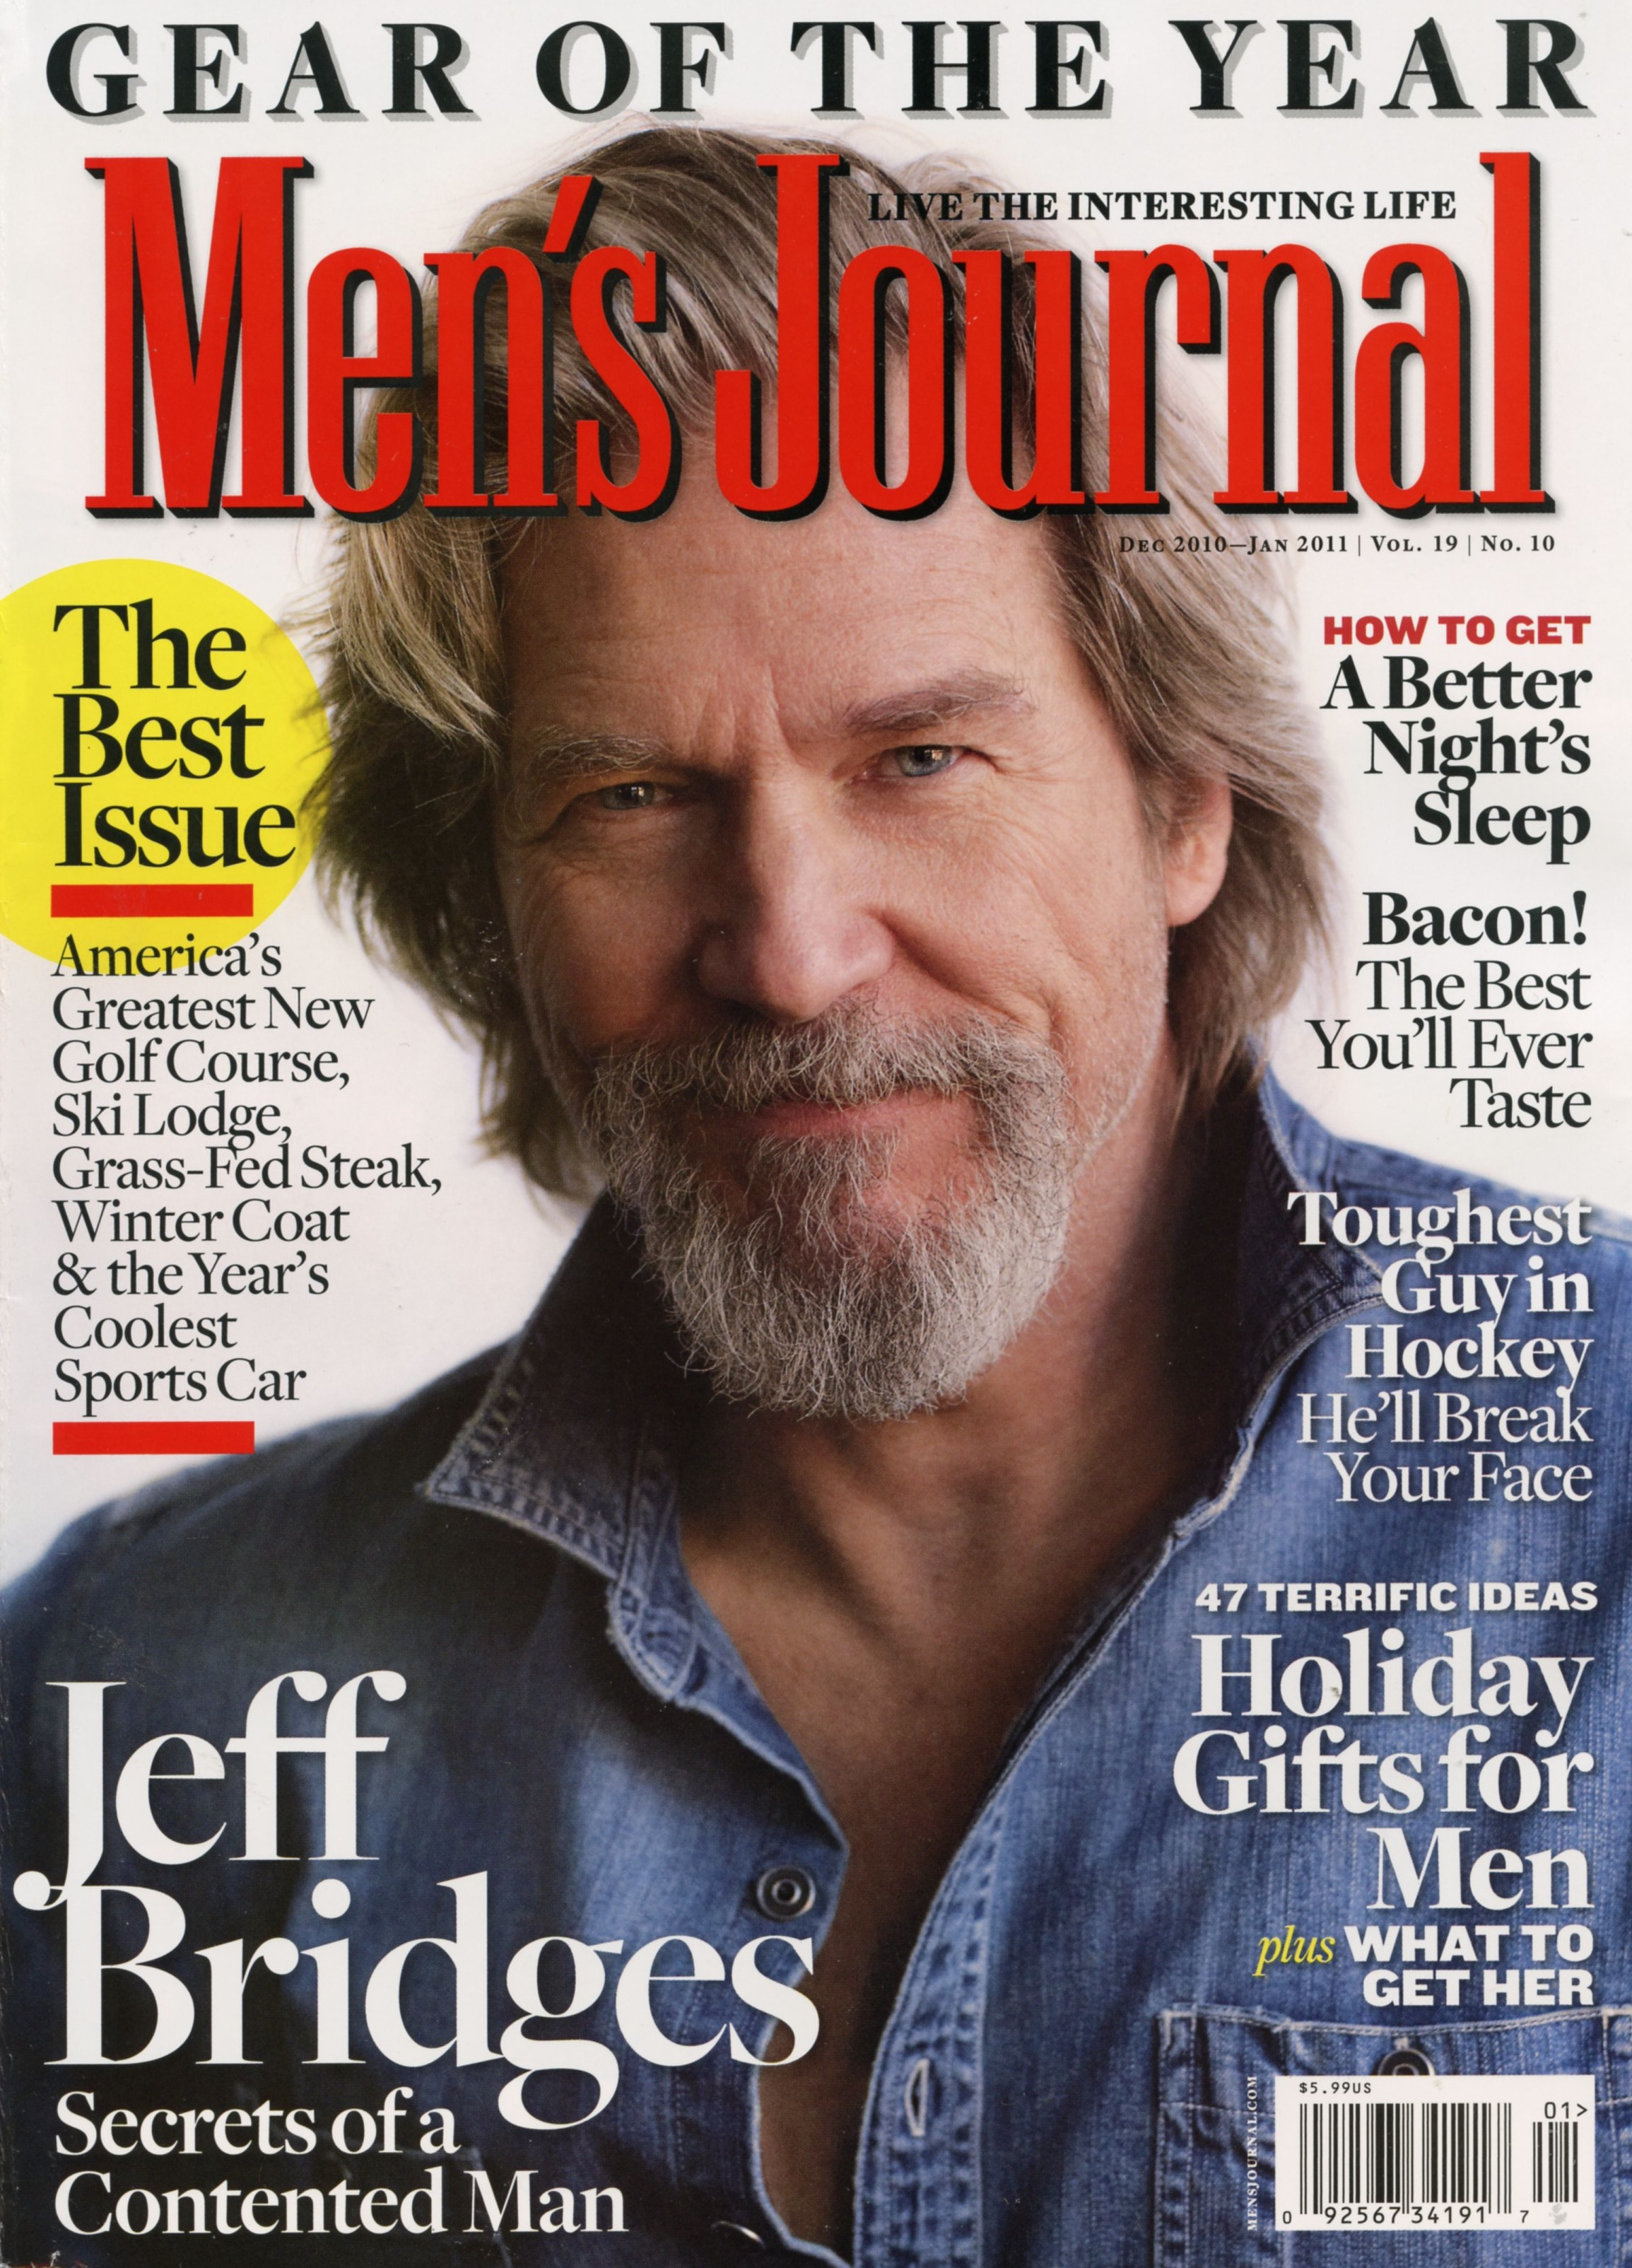 MensJournal_Dec_Jan_2010_2011_Cover1.jpg